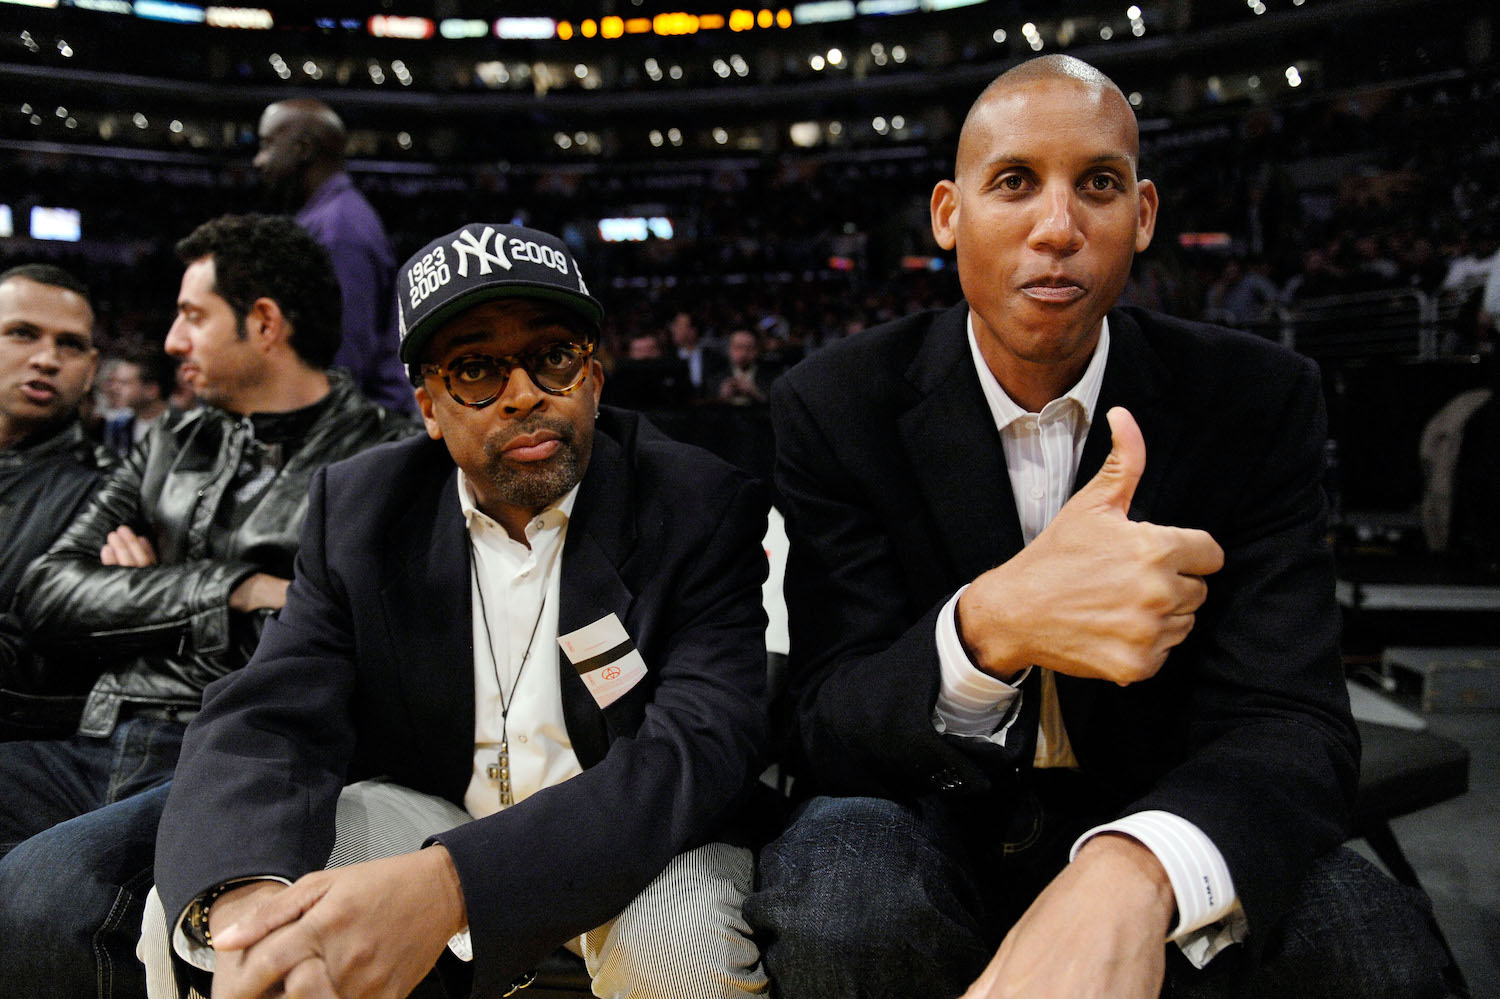 How Reggie Miller's Lost Bet Earned Him a Trip to Visit Mike Tyson in Prison and It Went Horribly Wrong